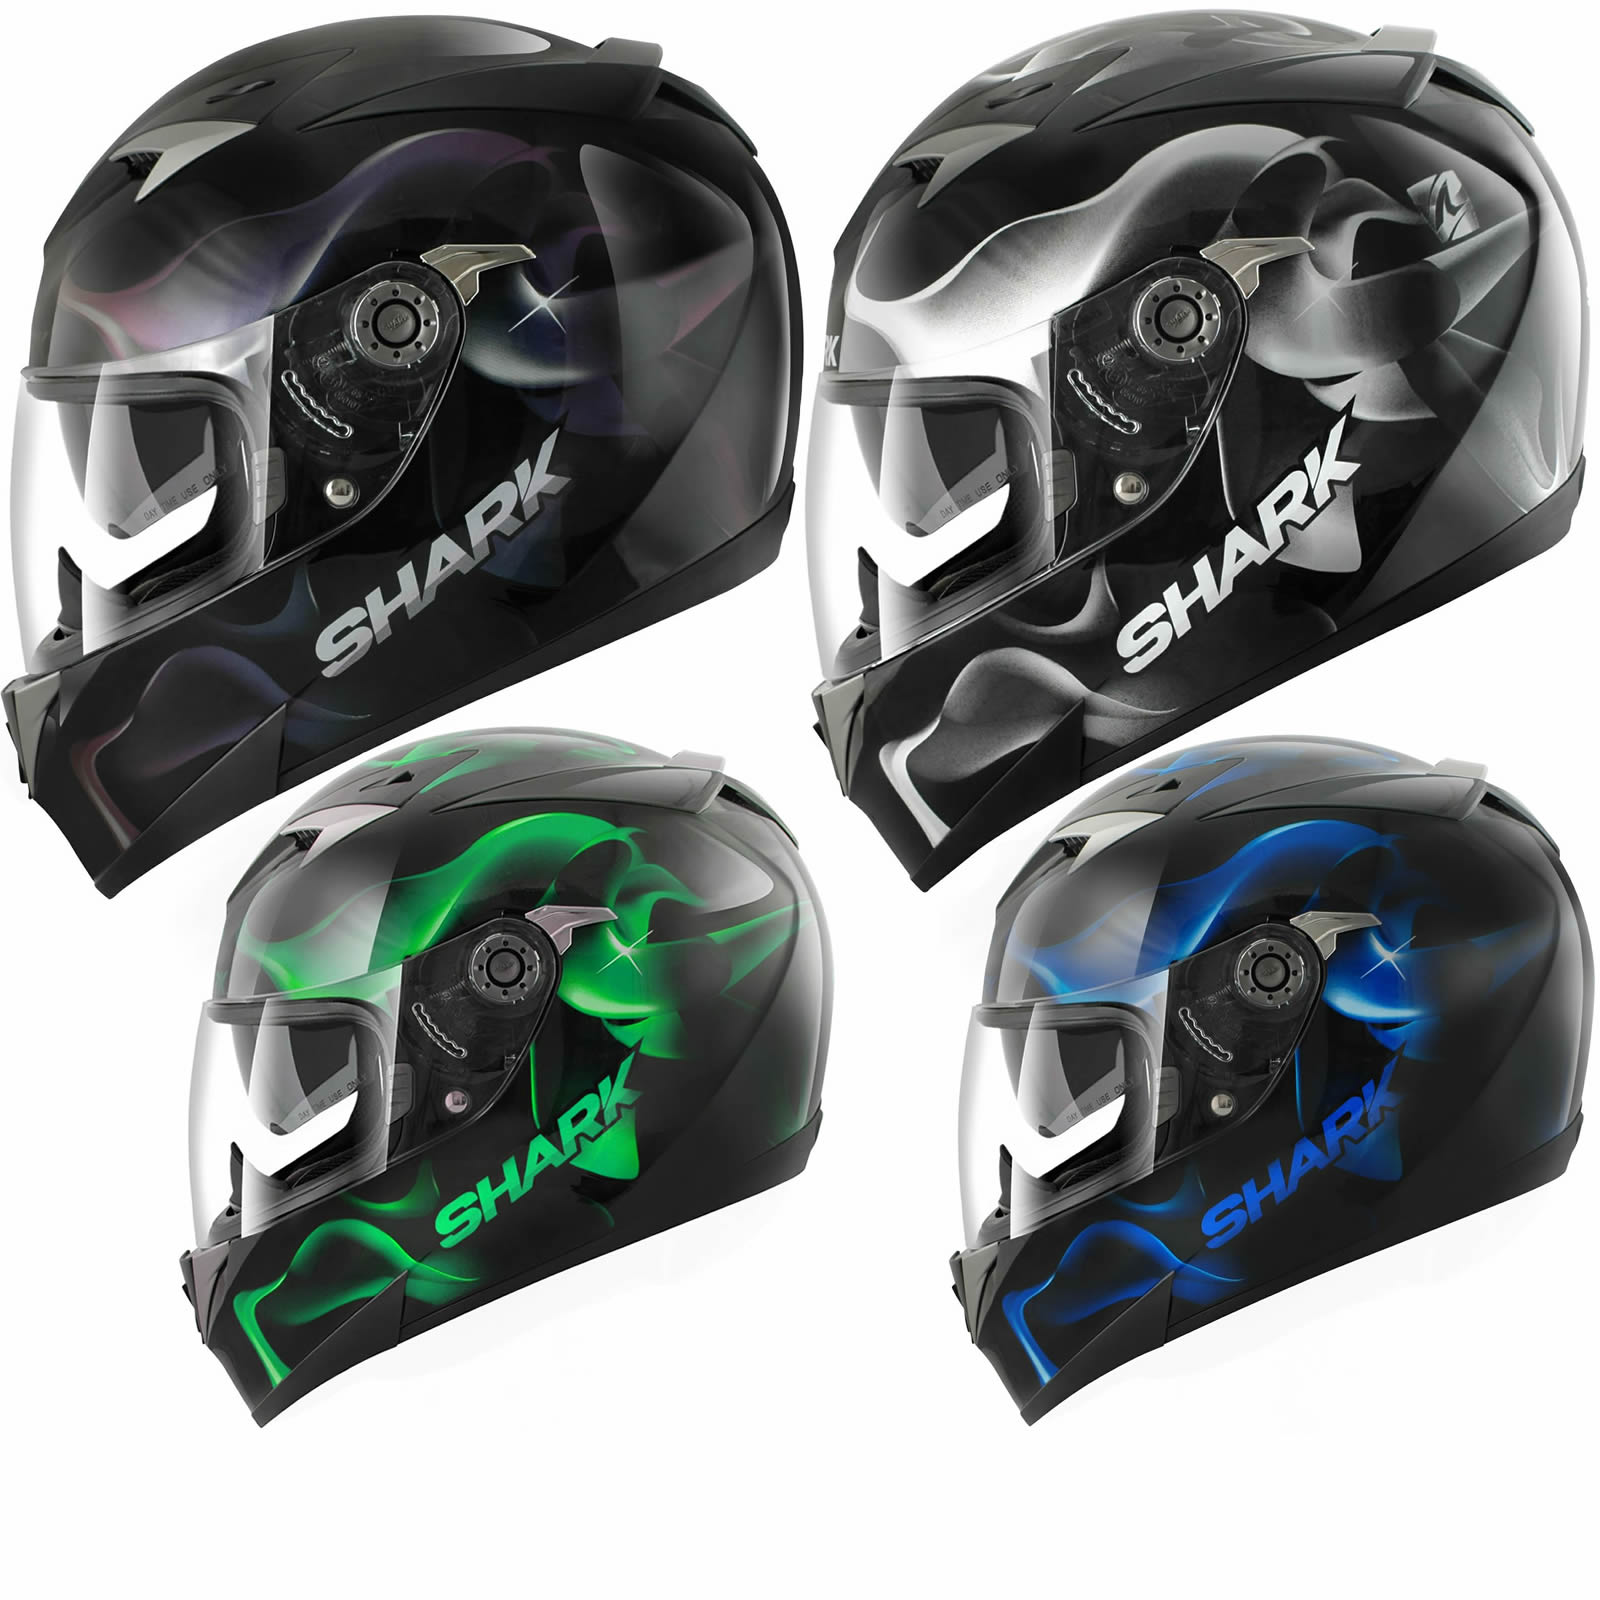 shark s900 c glow 3 moto sport course casque int gral pare soleil interne sharp ebay. Black Bedroom Furniture Sets. Home Design Ideas